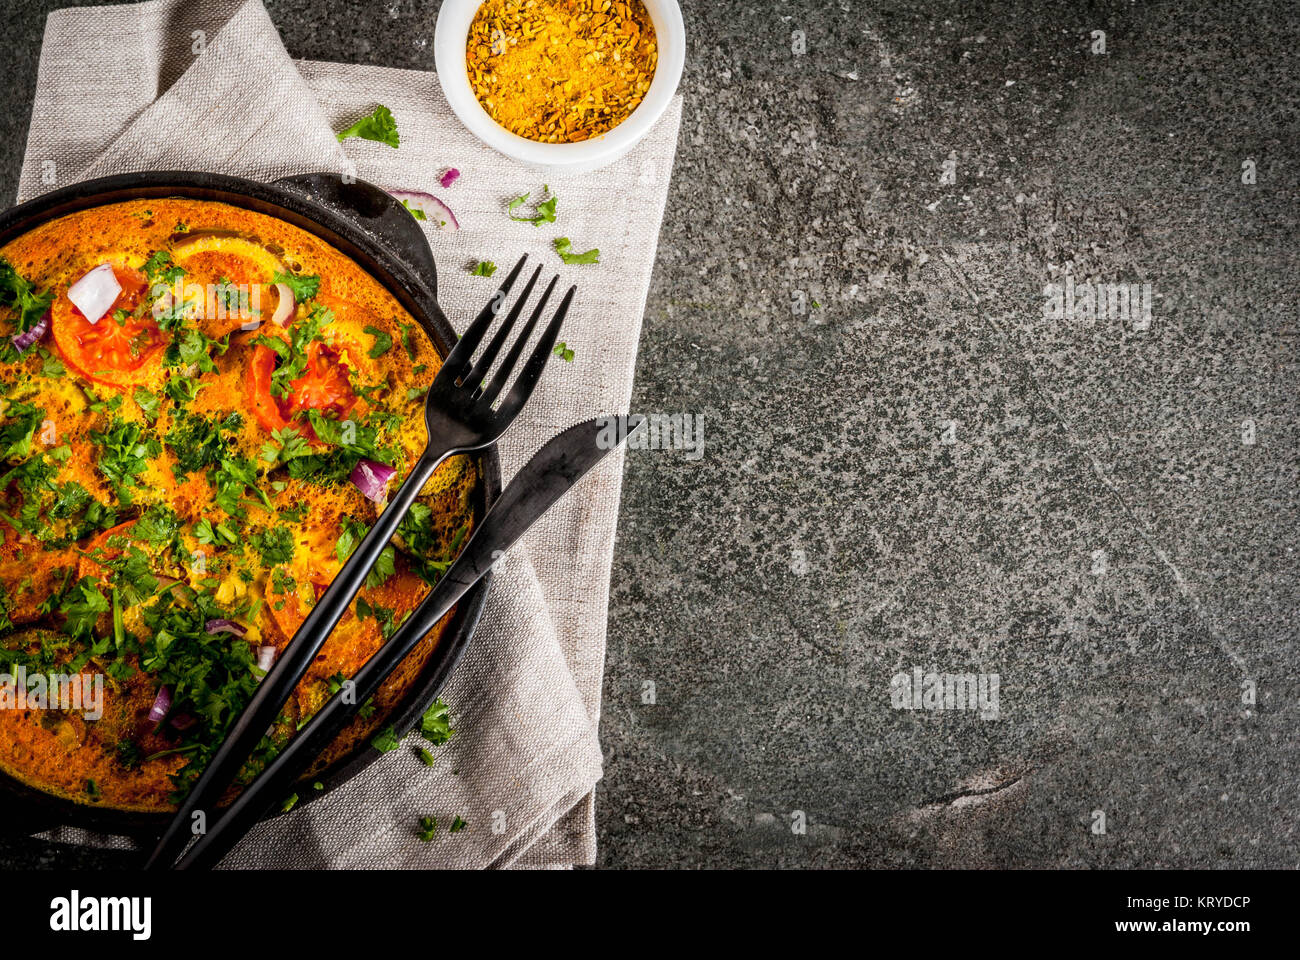 Indian food recipes, Masala Omelette with fresh vegetables - tomato, hot chili pepper, parsley, dark stone background, Stock Photo